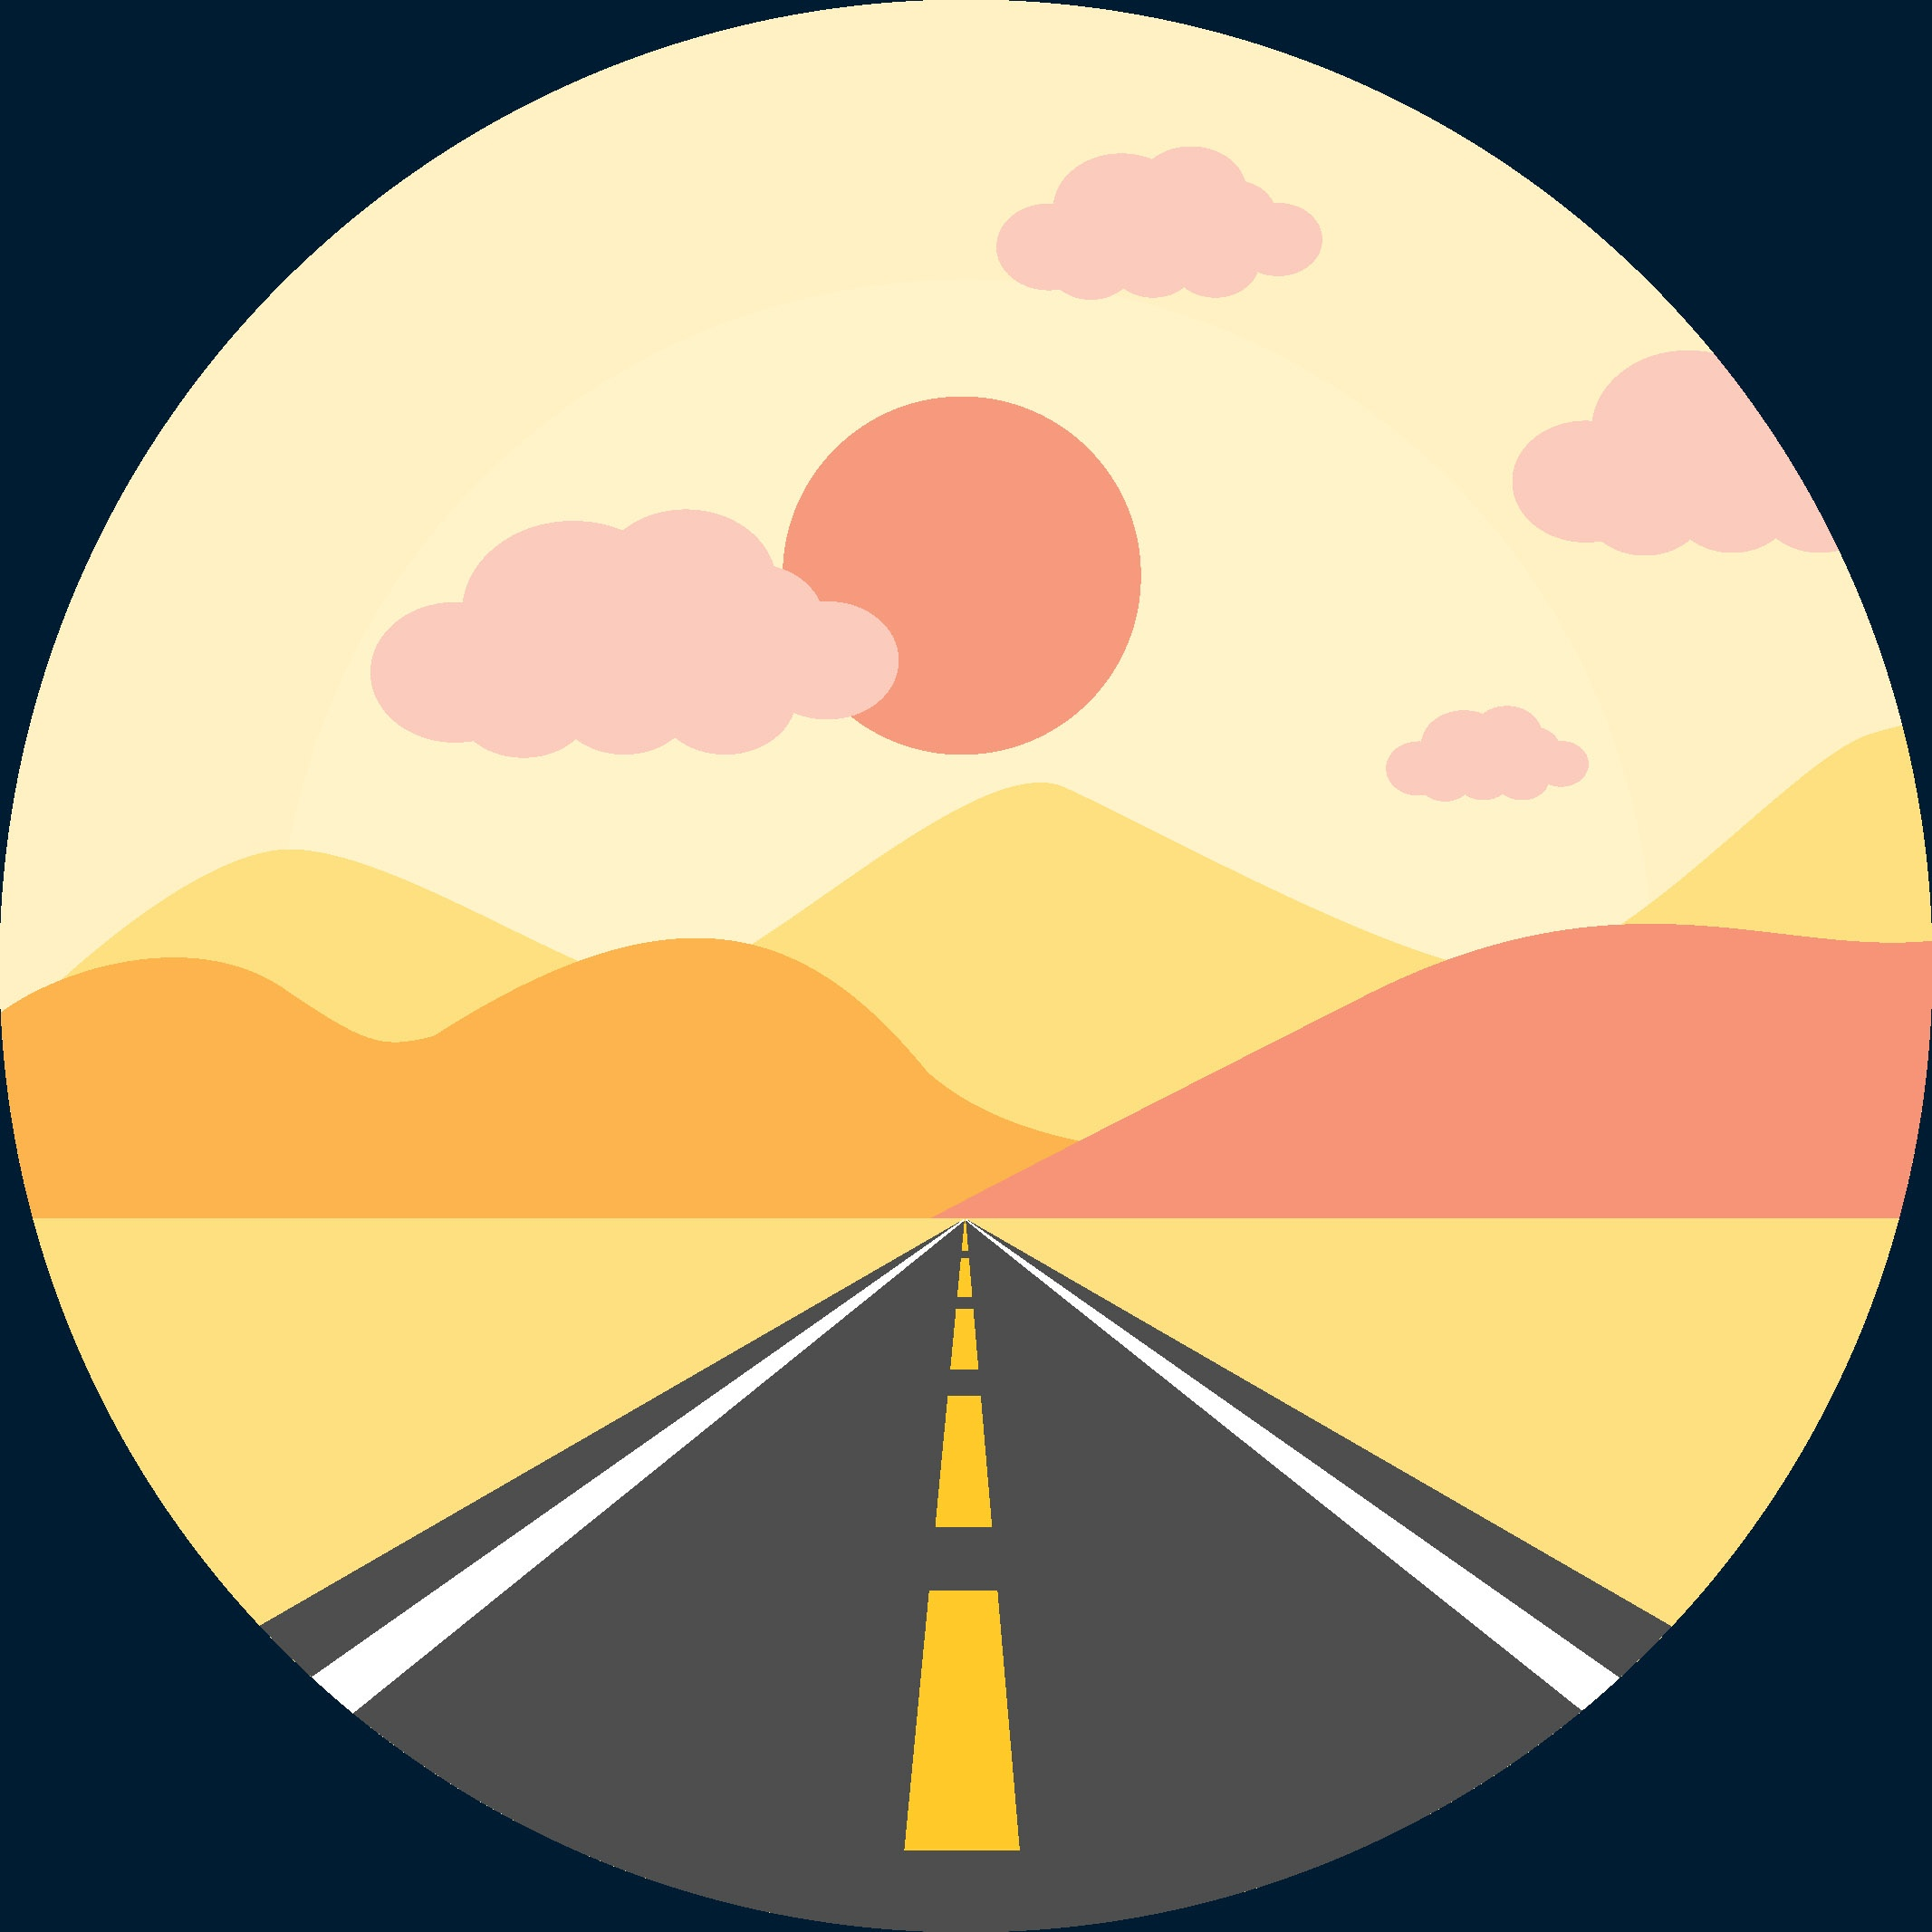 Get your copy of the IBM ICM roadmap today!